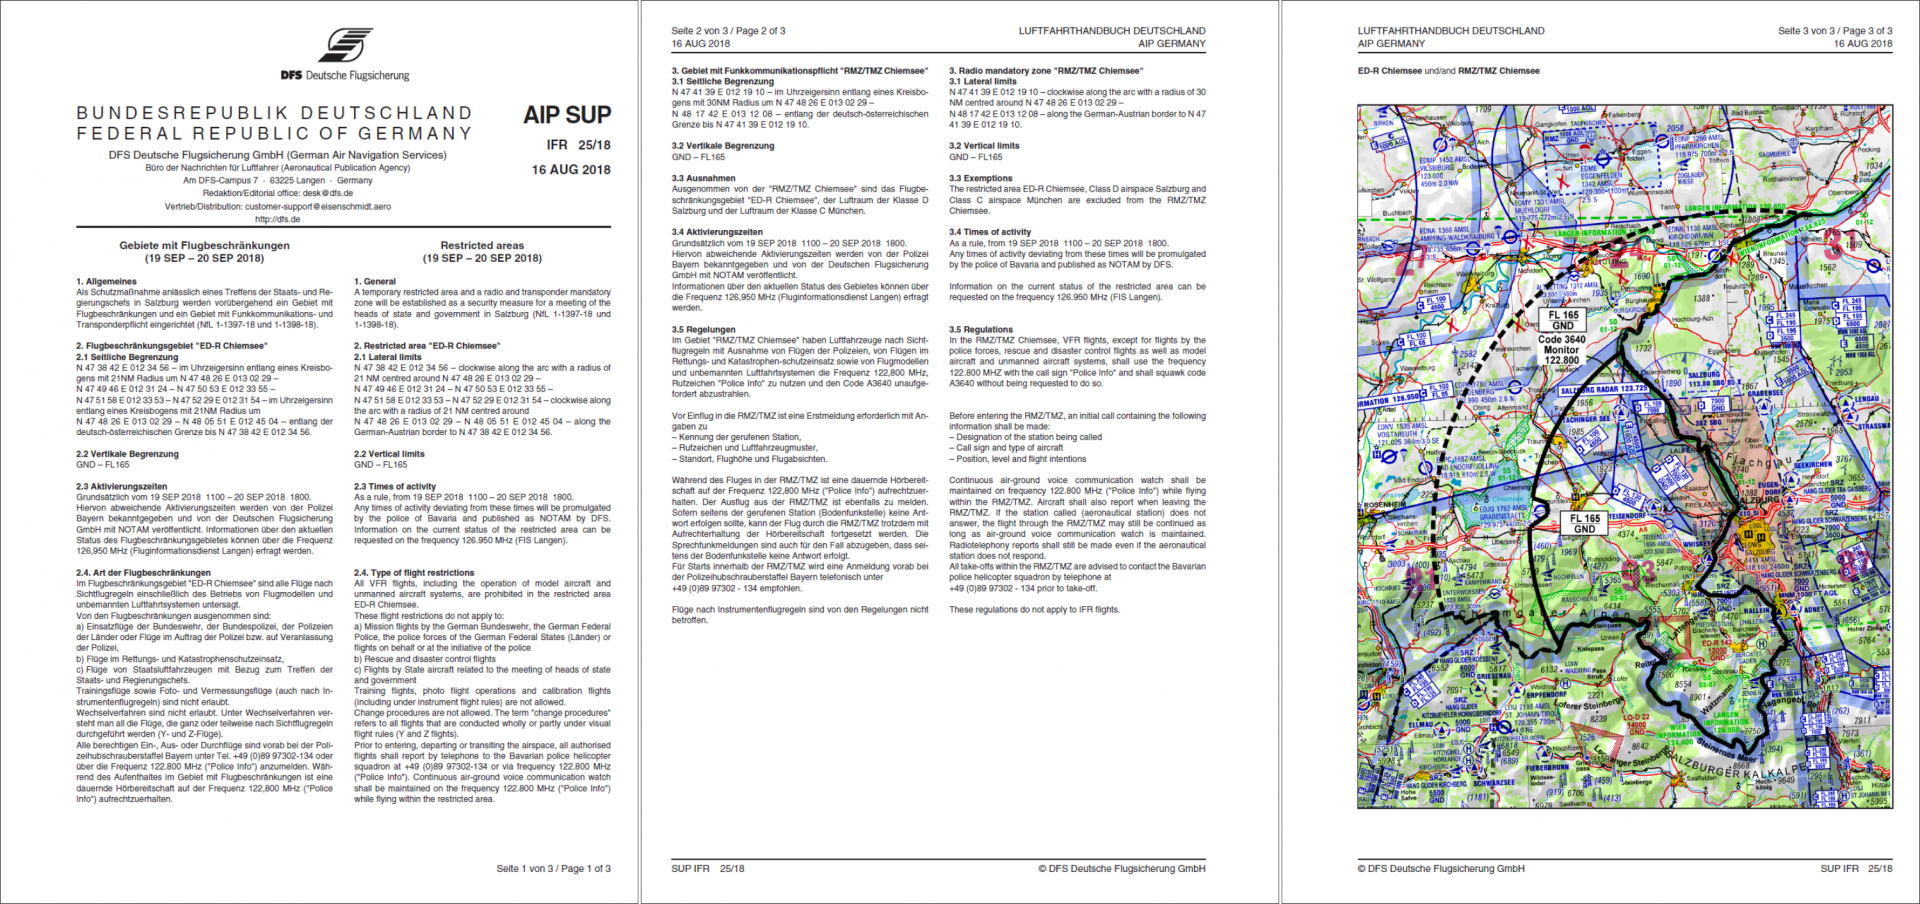 Abb. 2.2-7  ED-R Chiemsee (AIP SUP)_3000px.png